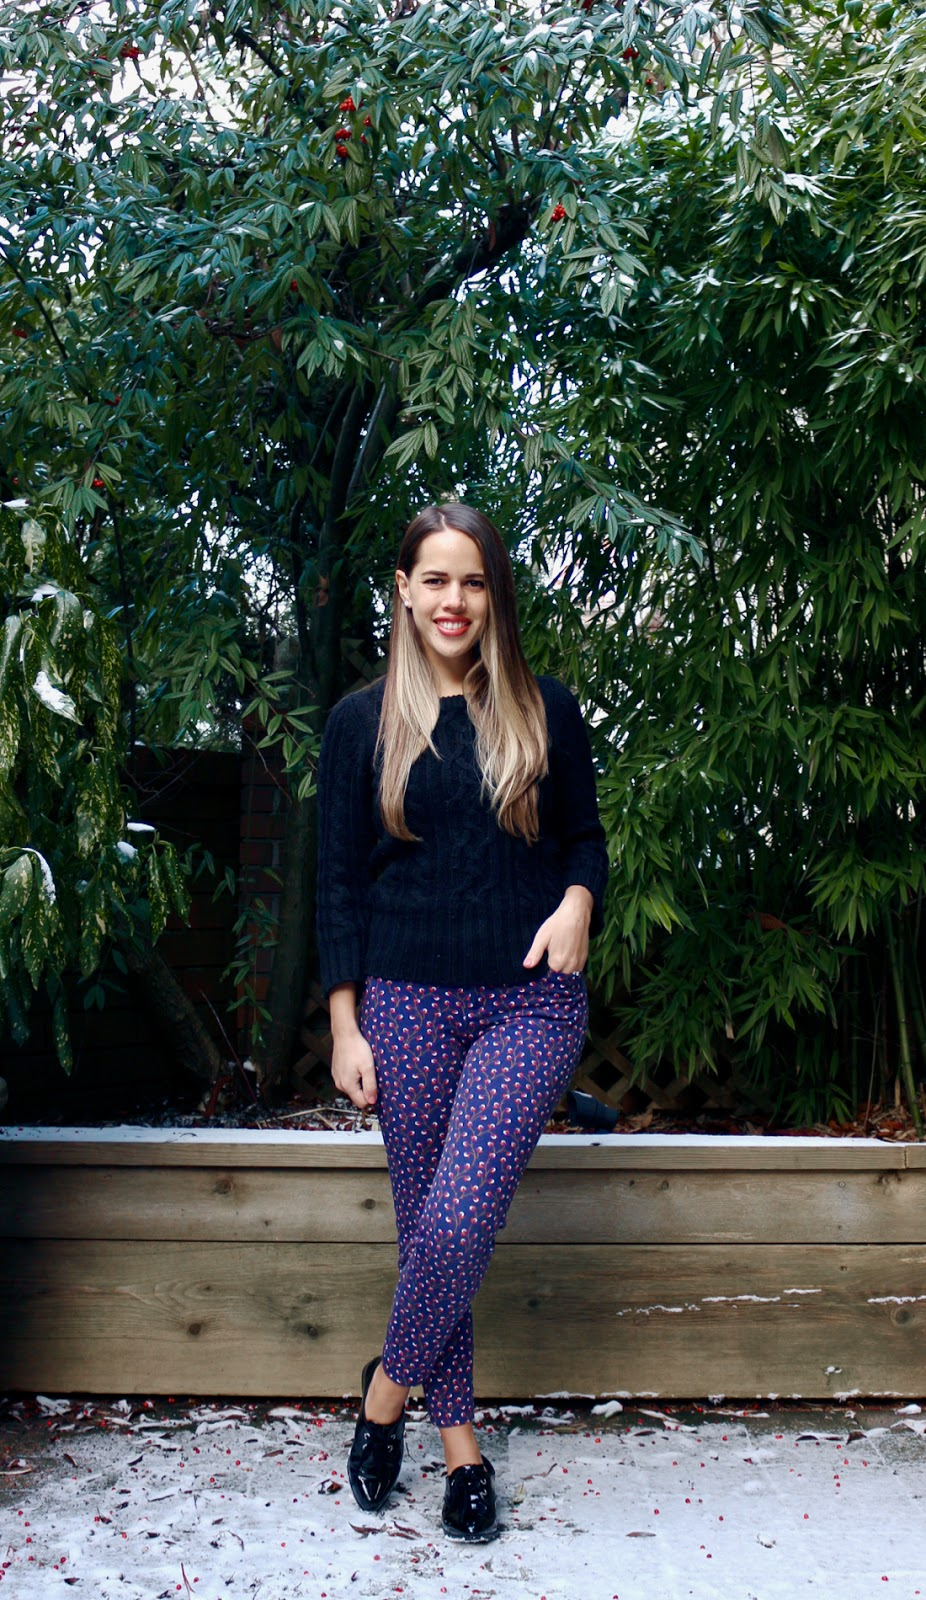 Jules in Flats - Patterned Ankle Pants + Cable Knit Sweater (Business Casual Winter Workwear on a Budget)